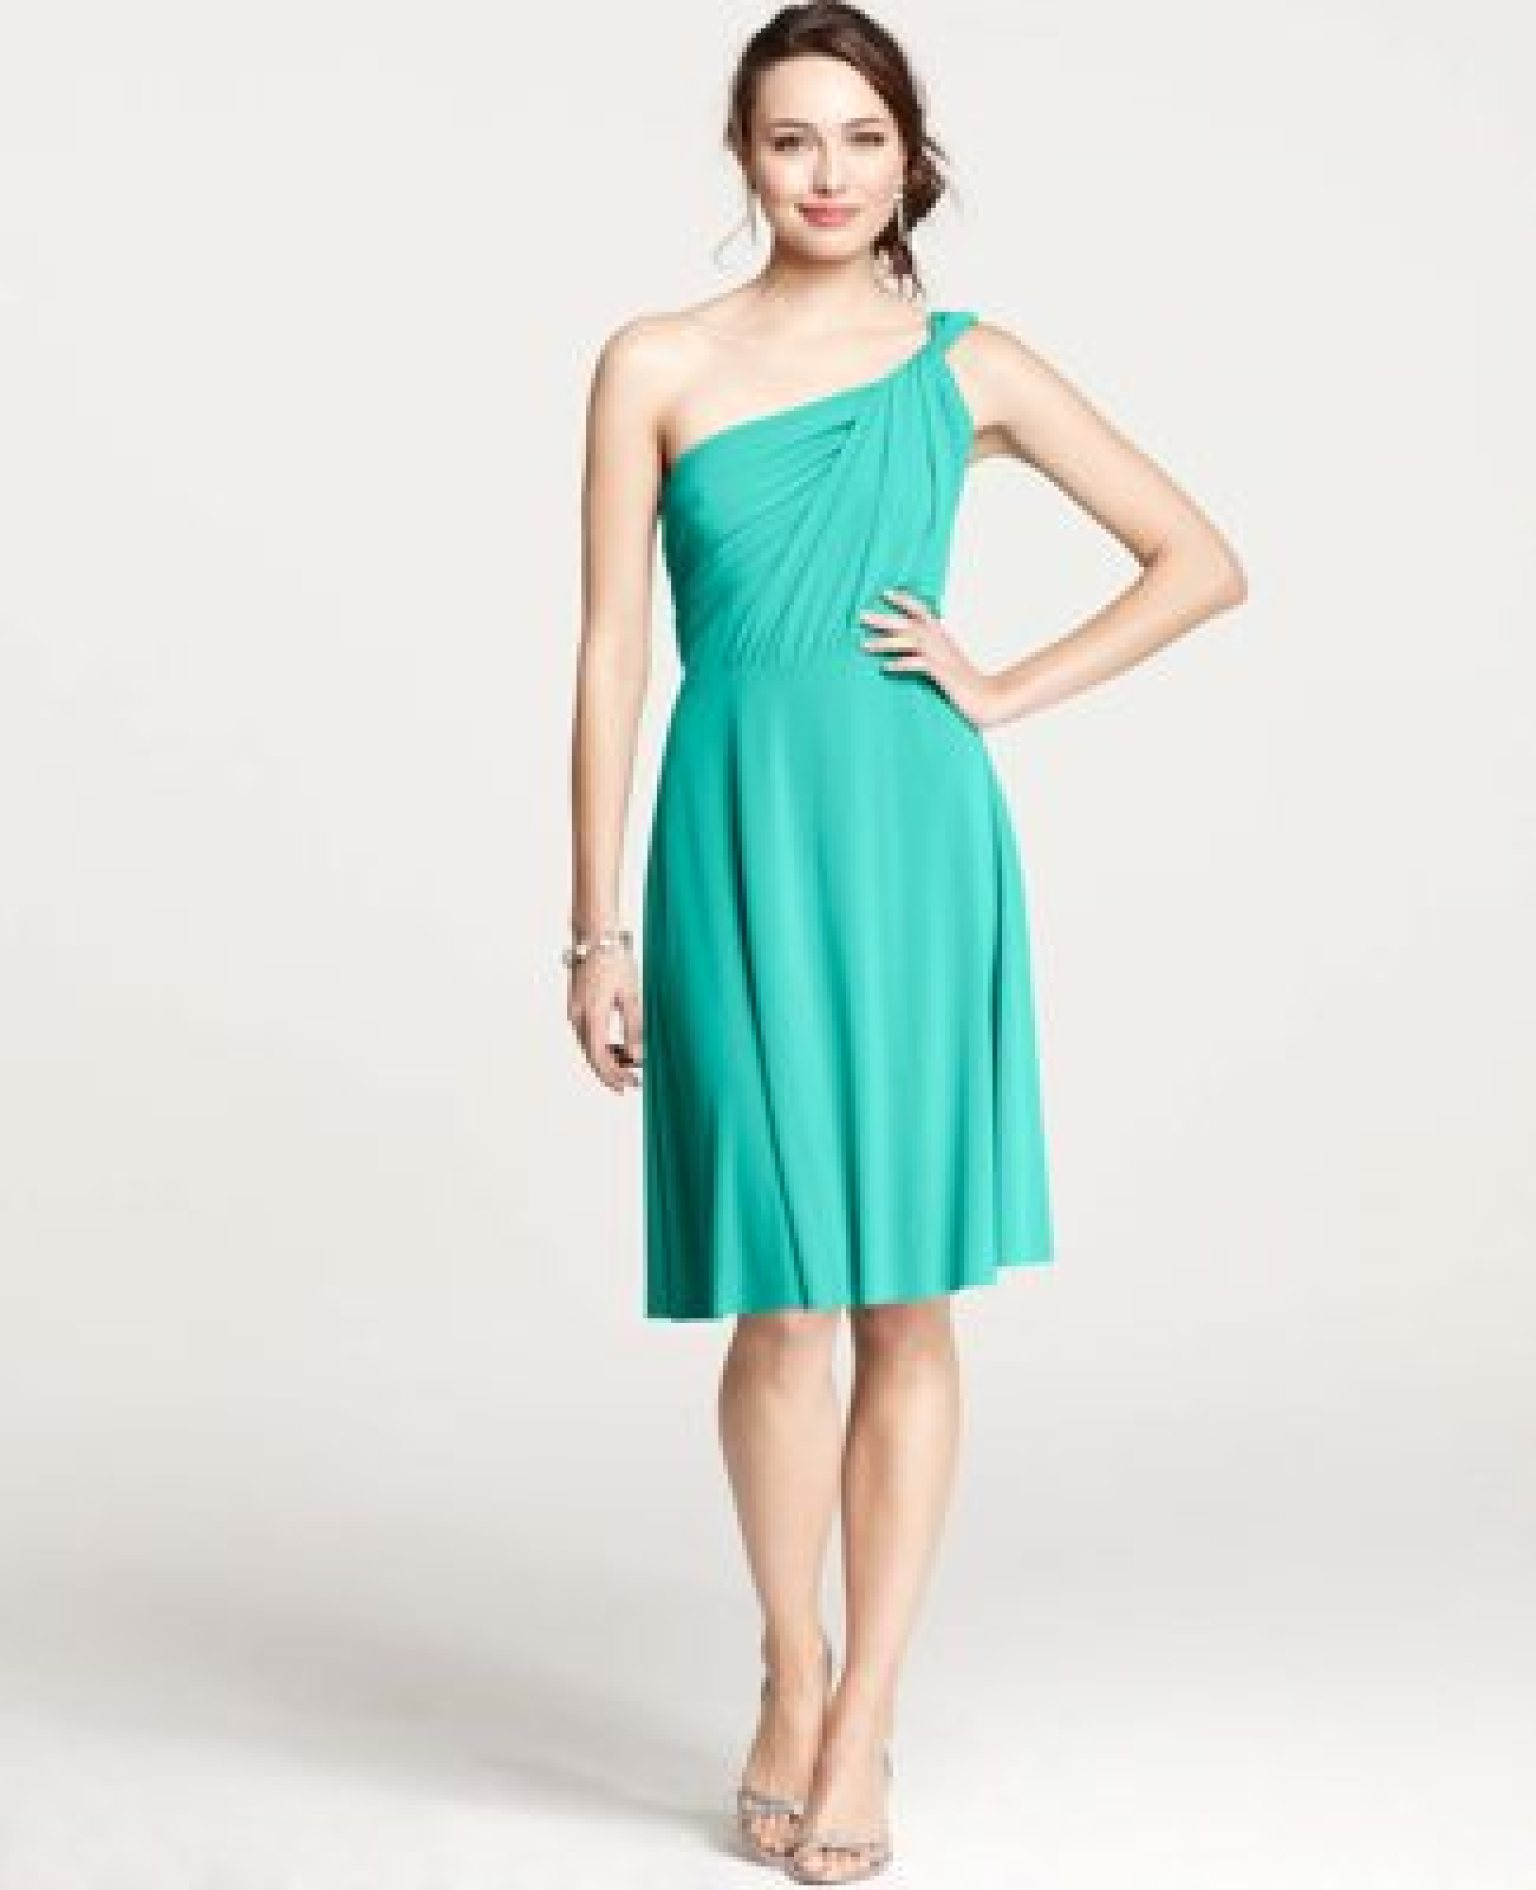 Wedding Guest Dresses For Summer Affairs (photos)  Huffpost. Casual Wedding Dresses Not White. Backless Wedding Dresses With Sleeves. Wedding Dress Style V3398. Blue Wedding Dresses Australia. Long Sleeve Wedding Dresses Utah. Pink Camo Wedding Dresses. Summer Wedding Occasion Dresses. Winter Wedding Dresses Uk 2015